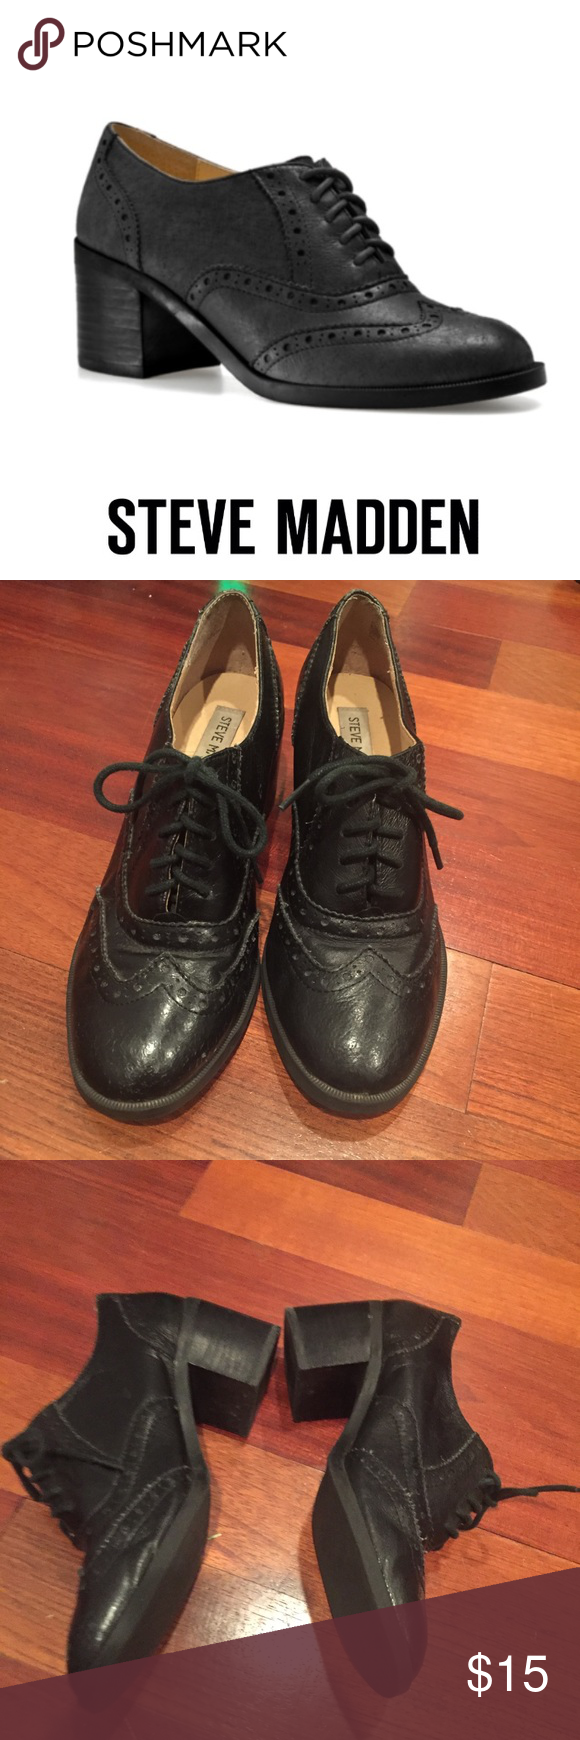 570867c4bae Steve Madden Black Leather Randi Oxford Steve Madden Black Leather Randi  Oxford. From Steve Madden